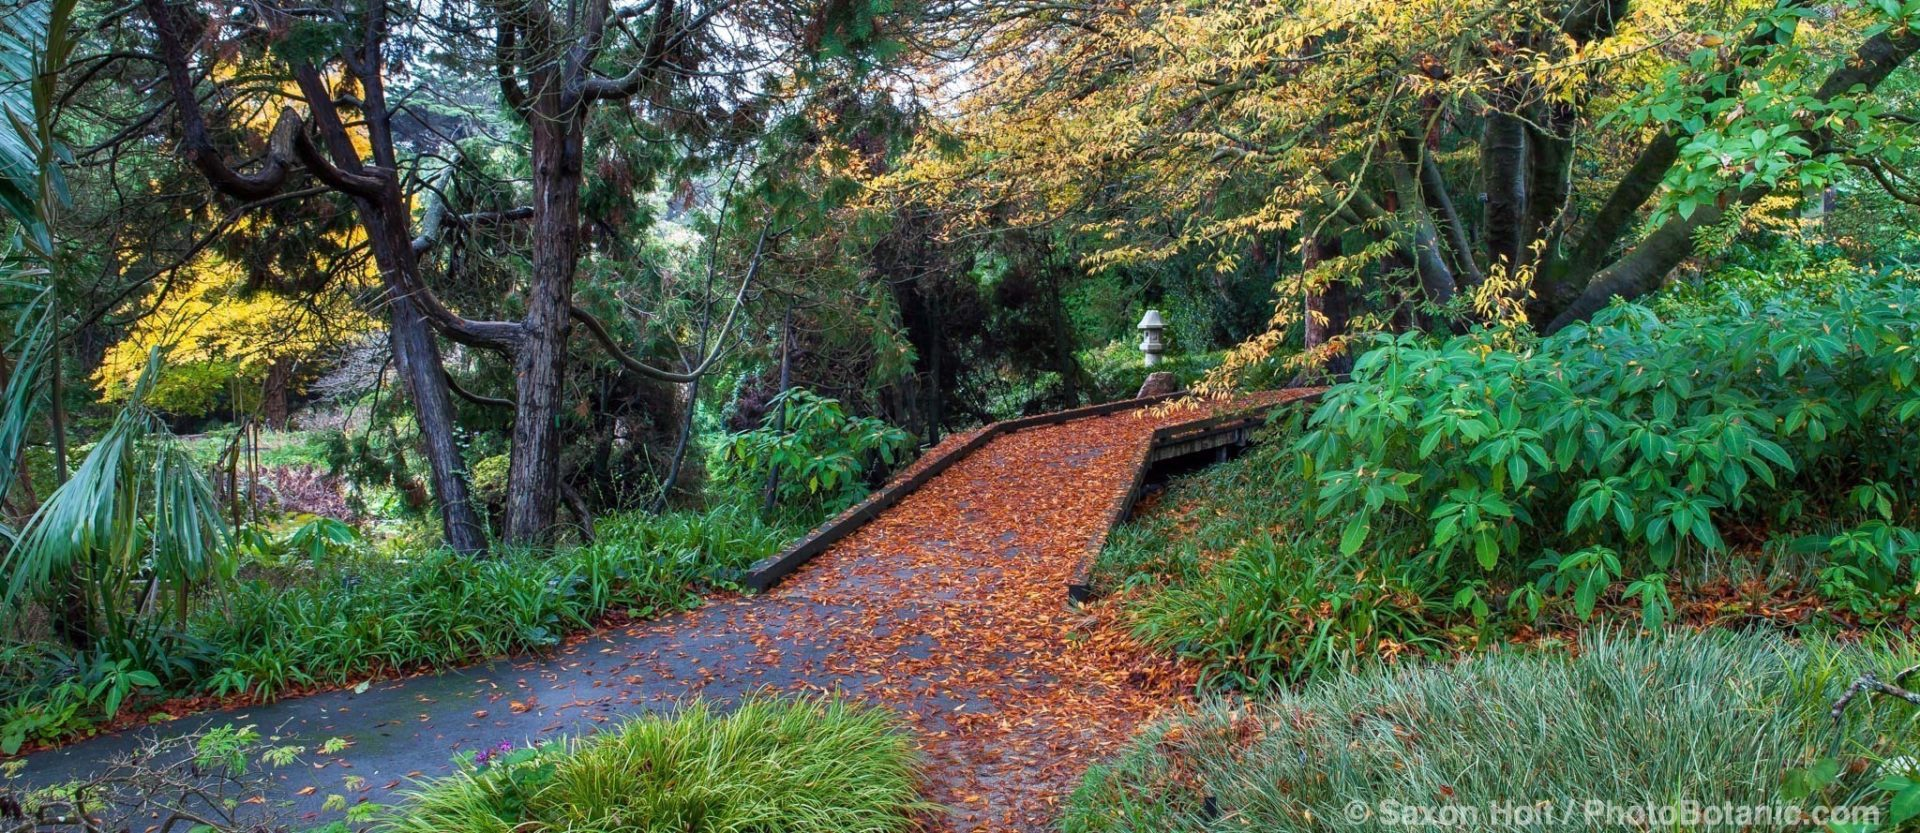 Boardwalk path covered with autumn leaves of Plum tree in Temperate Asia section of San Francisco Botanical Garden